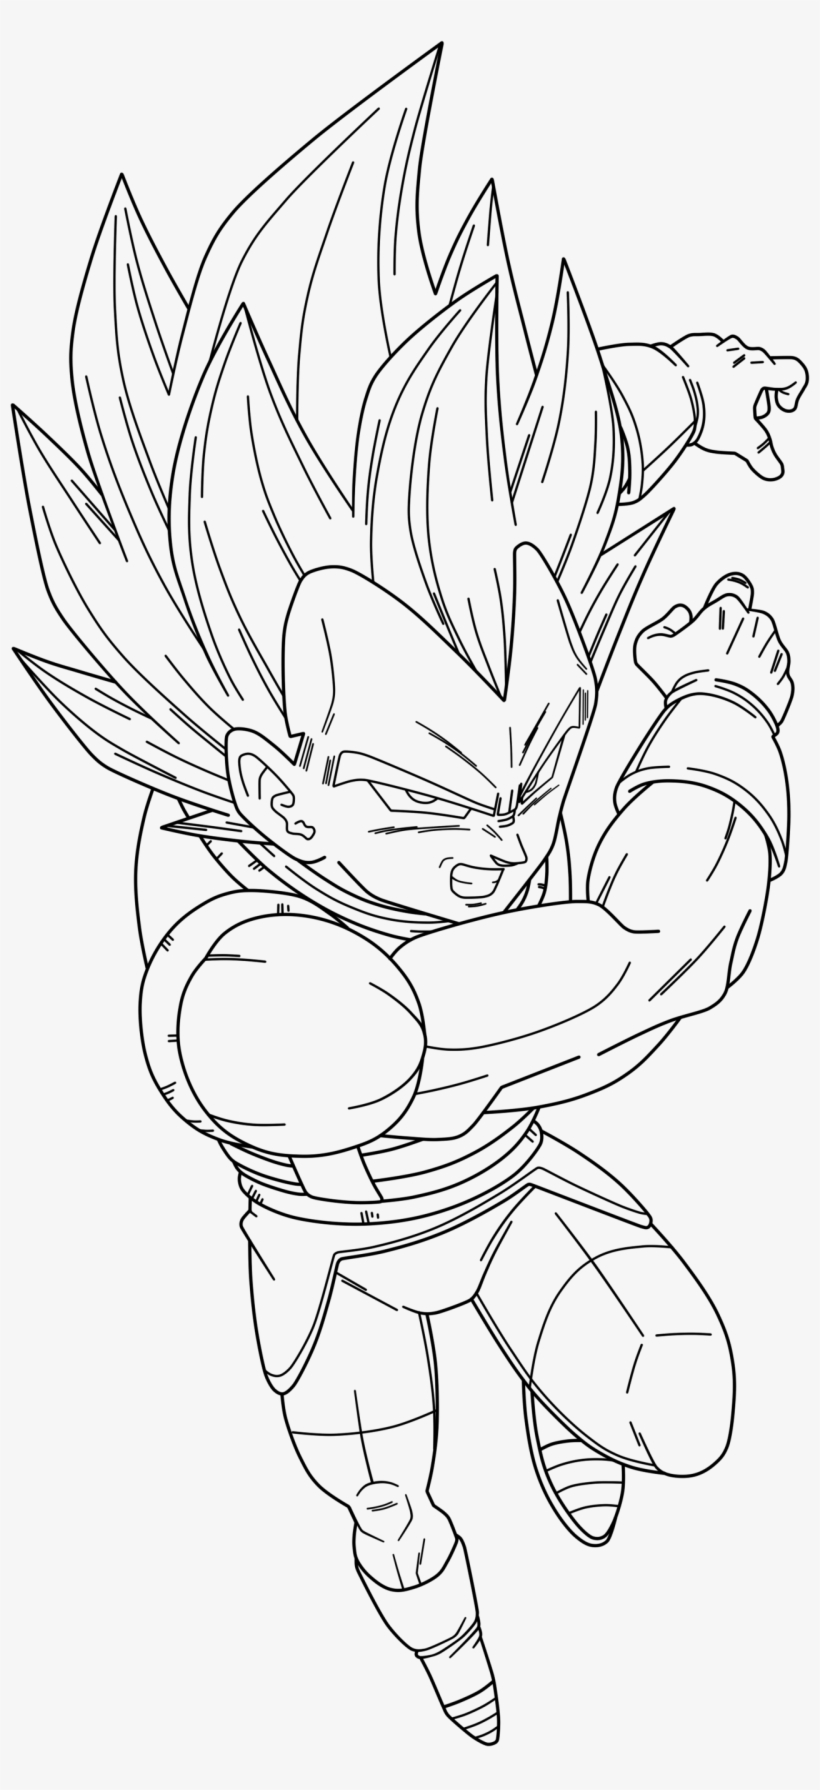 Vegeta Super Saiyan God Super Saiyan By Dark Vegeta Super Saiyan